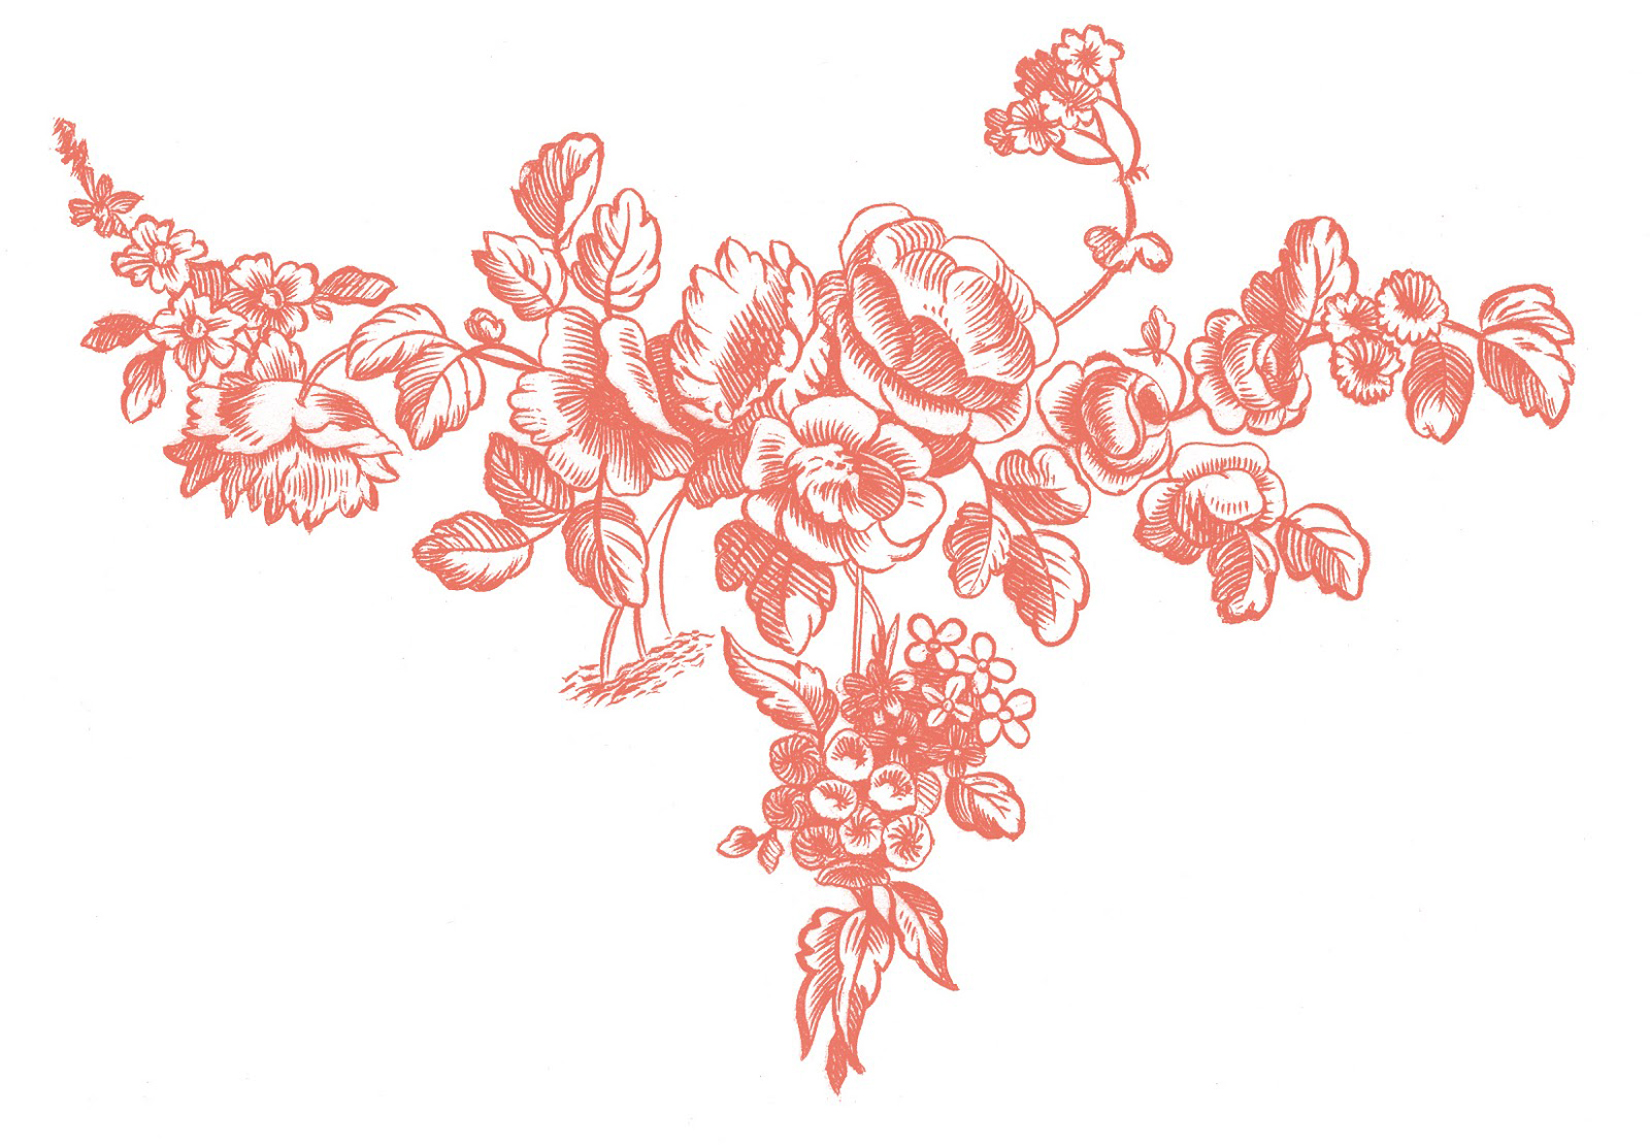 french-roses-engraving-graphicsfairy